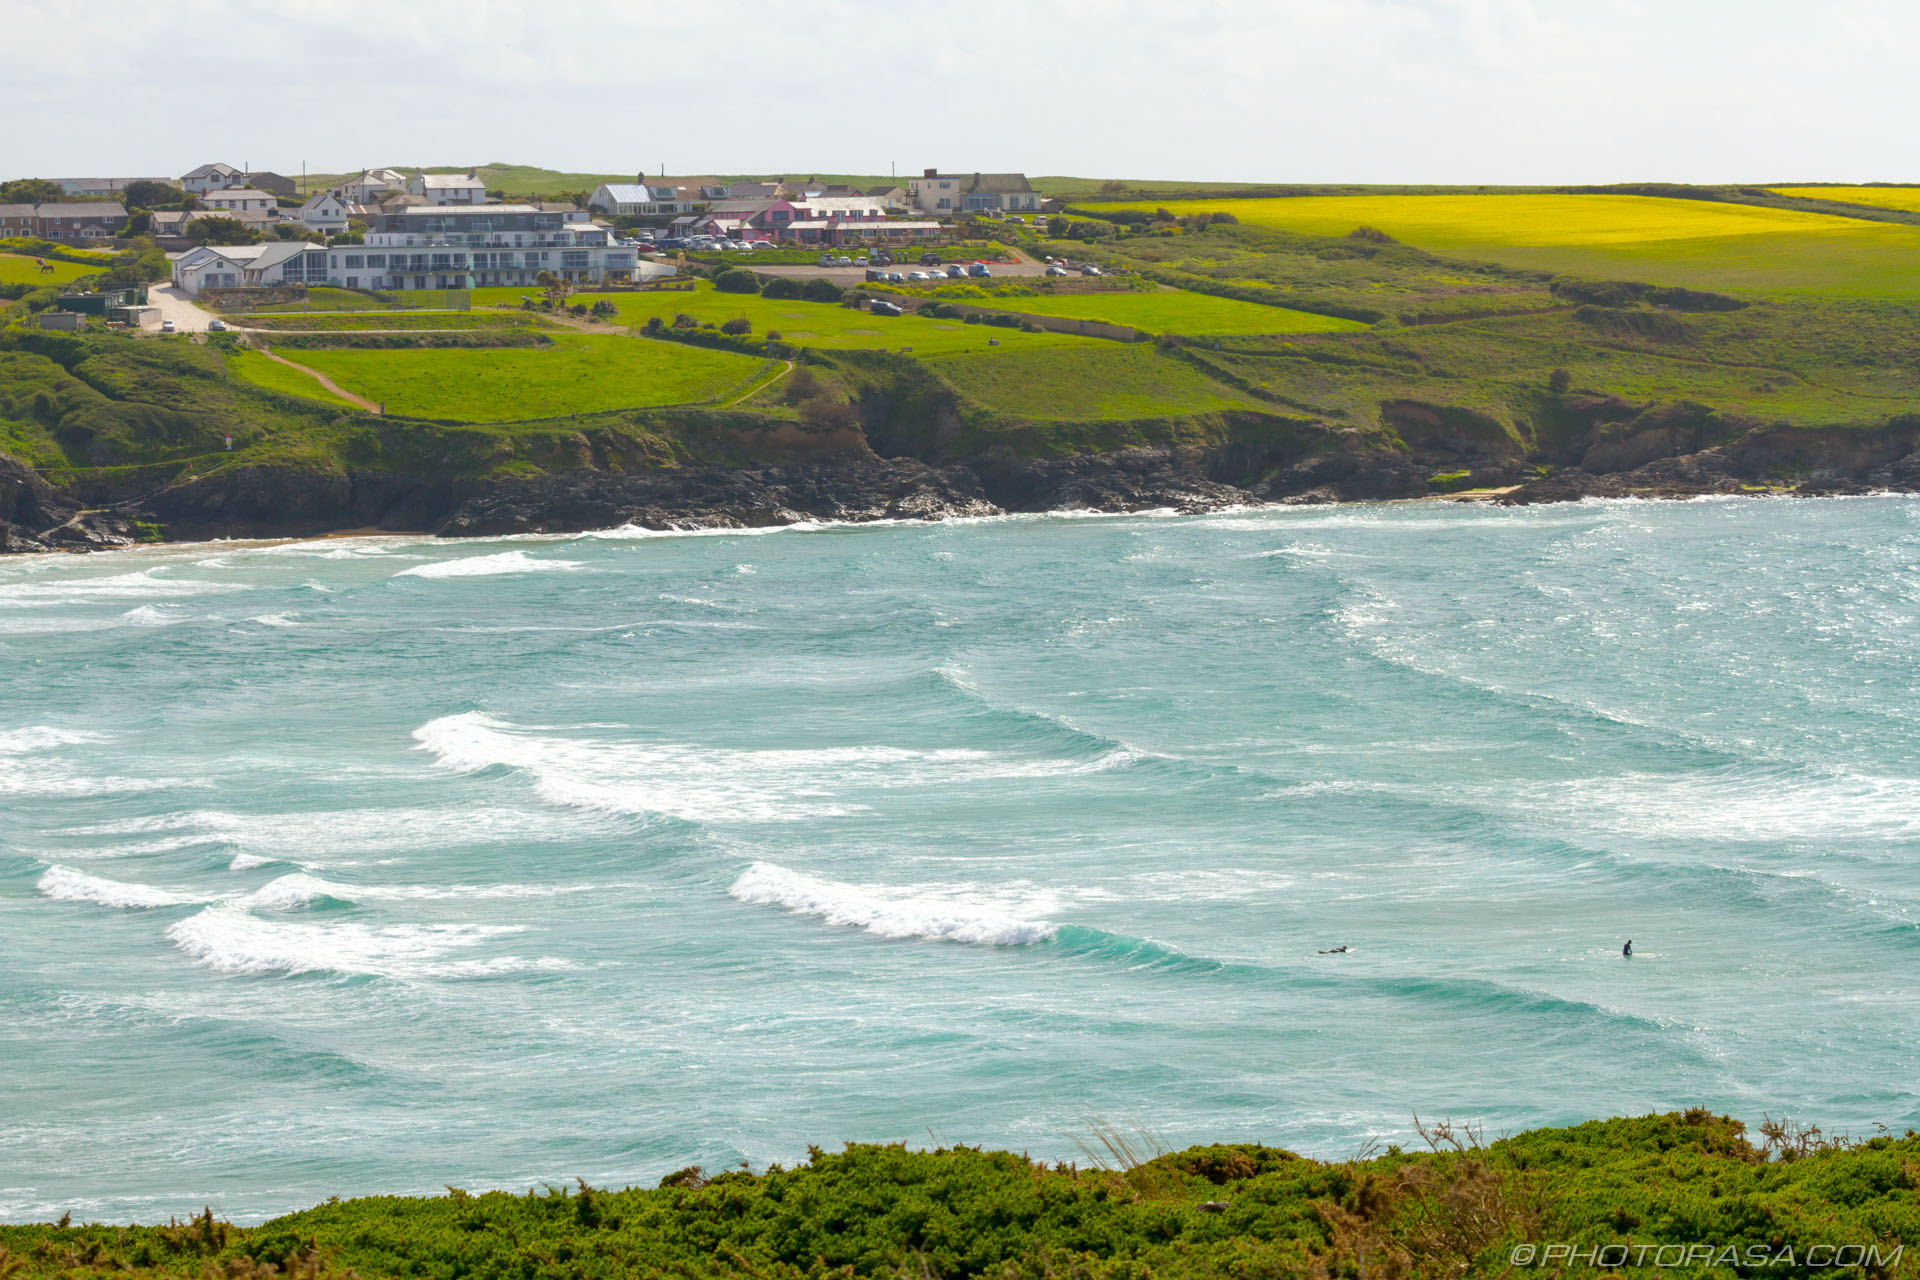 https://photorasa.com/newquay/west-pentire-and-mouth-of-river-gannel-from-pentire-peninsula/